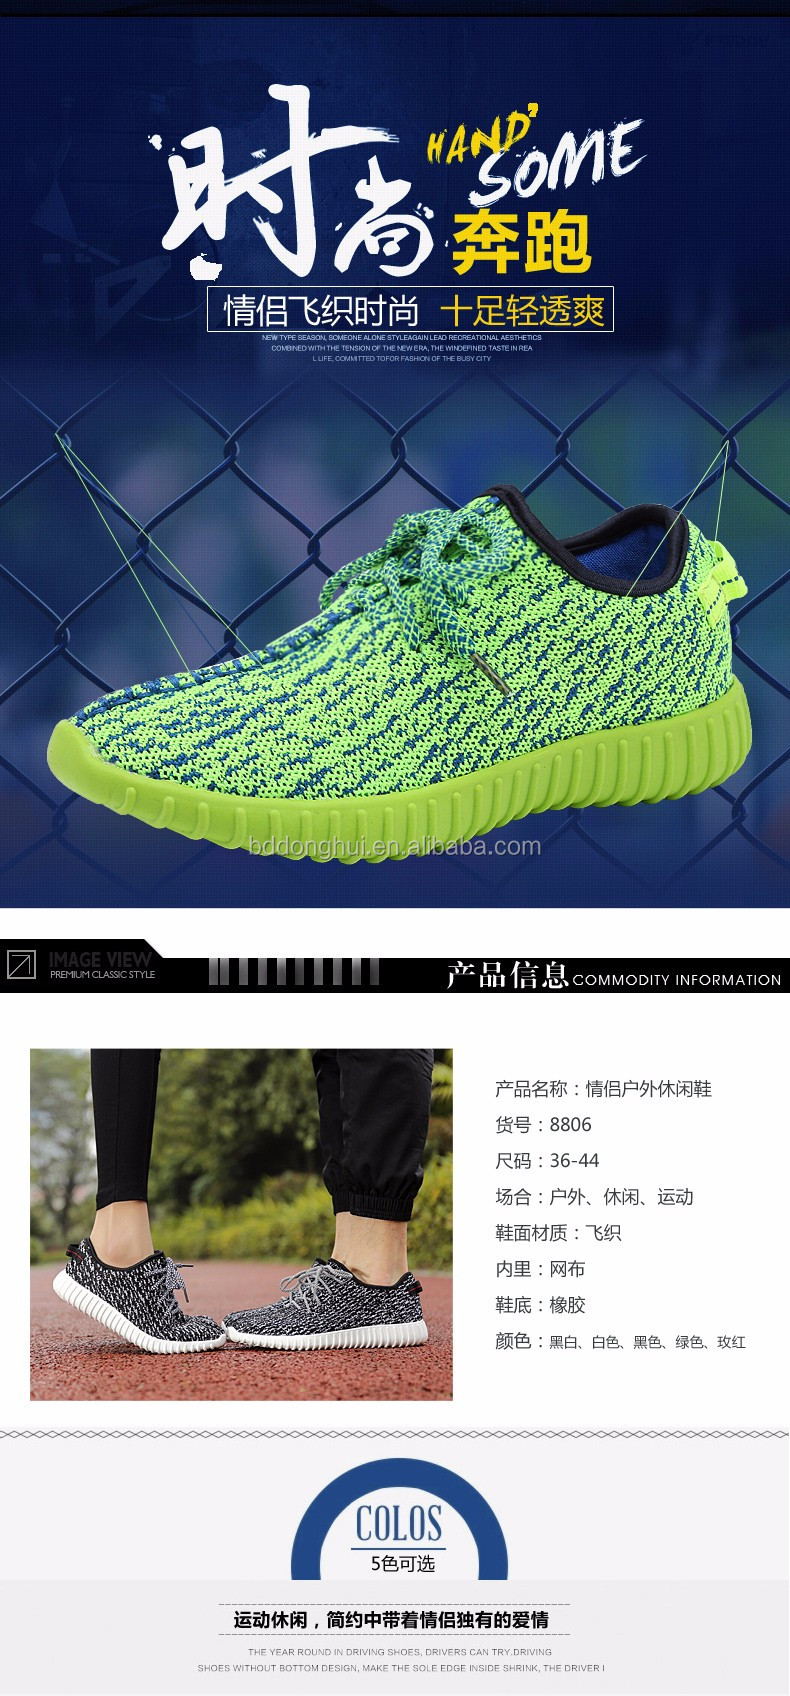 2016 top factory direct new mens 350 running shoes custom athletic shoes sneakers, Wholesale cheap fashion brand sport shoes